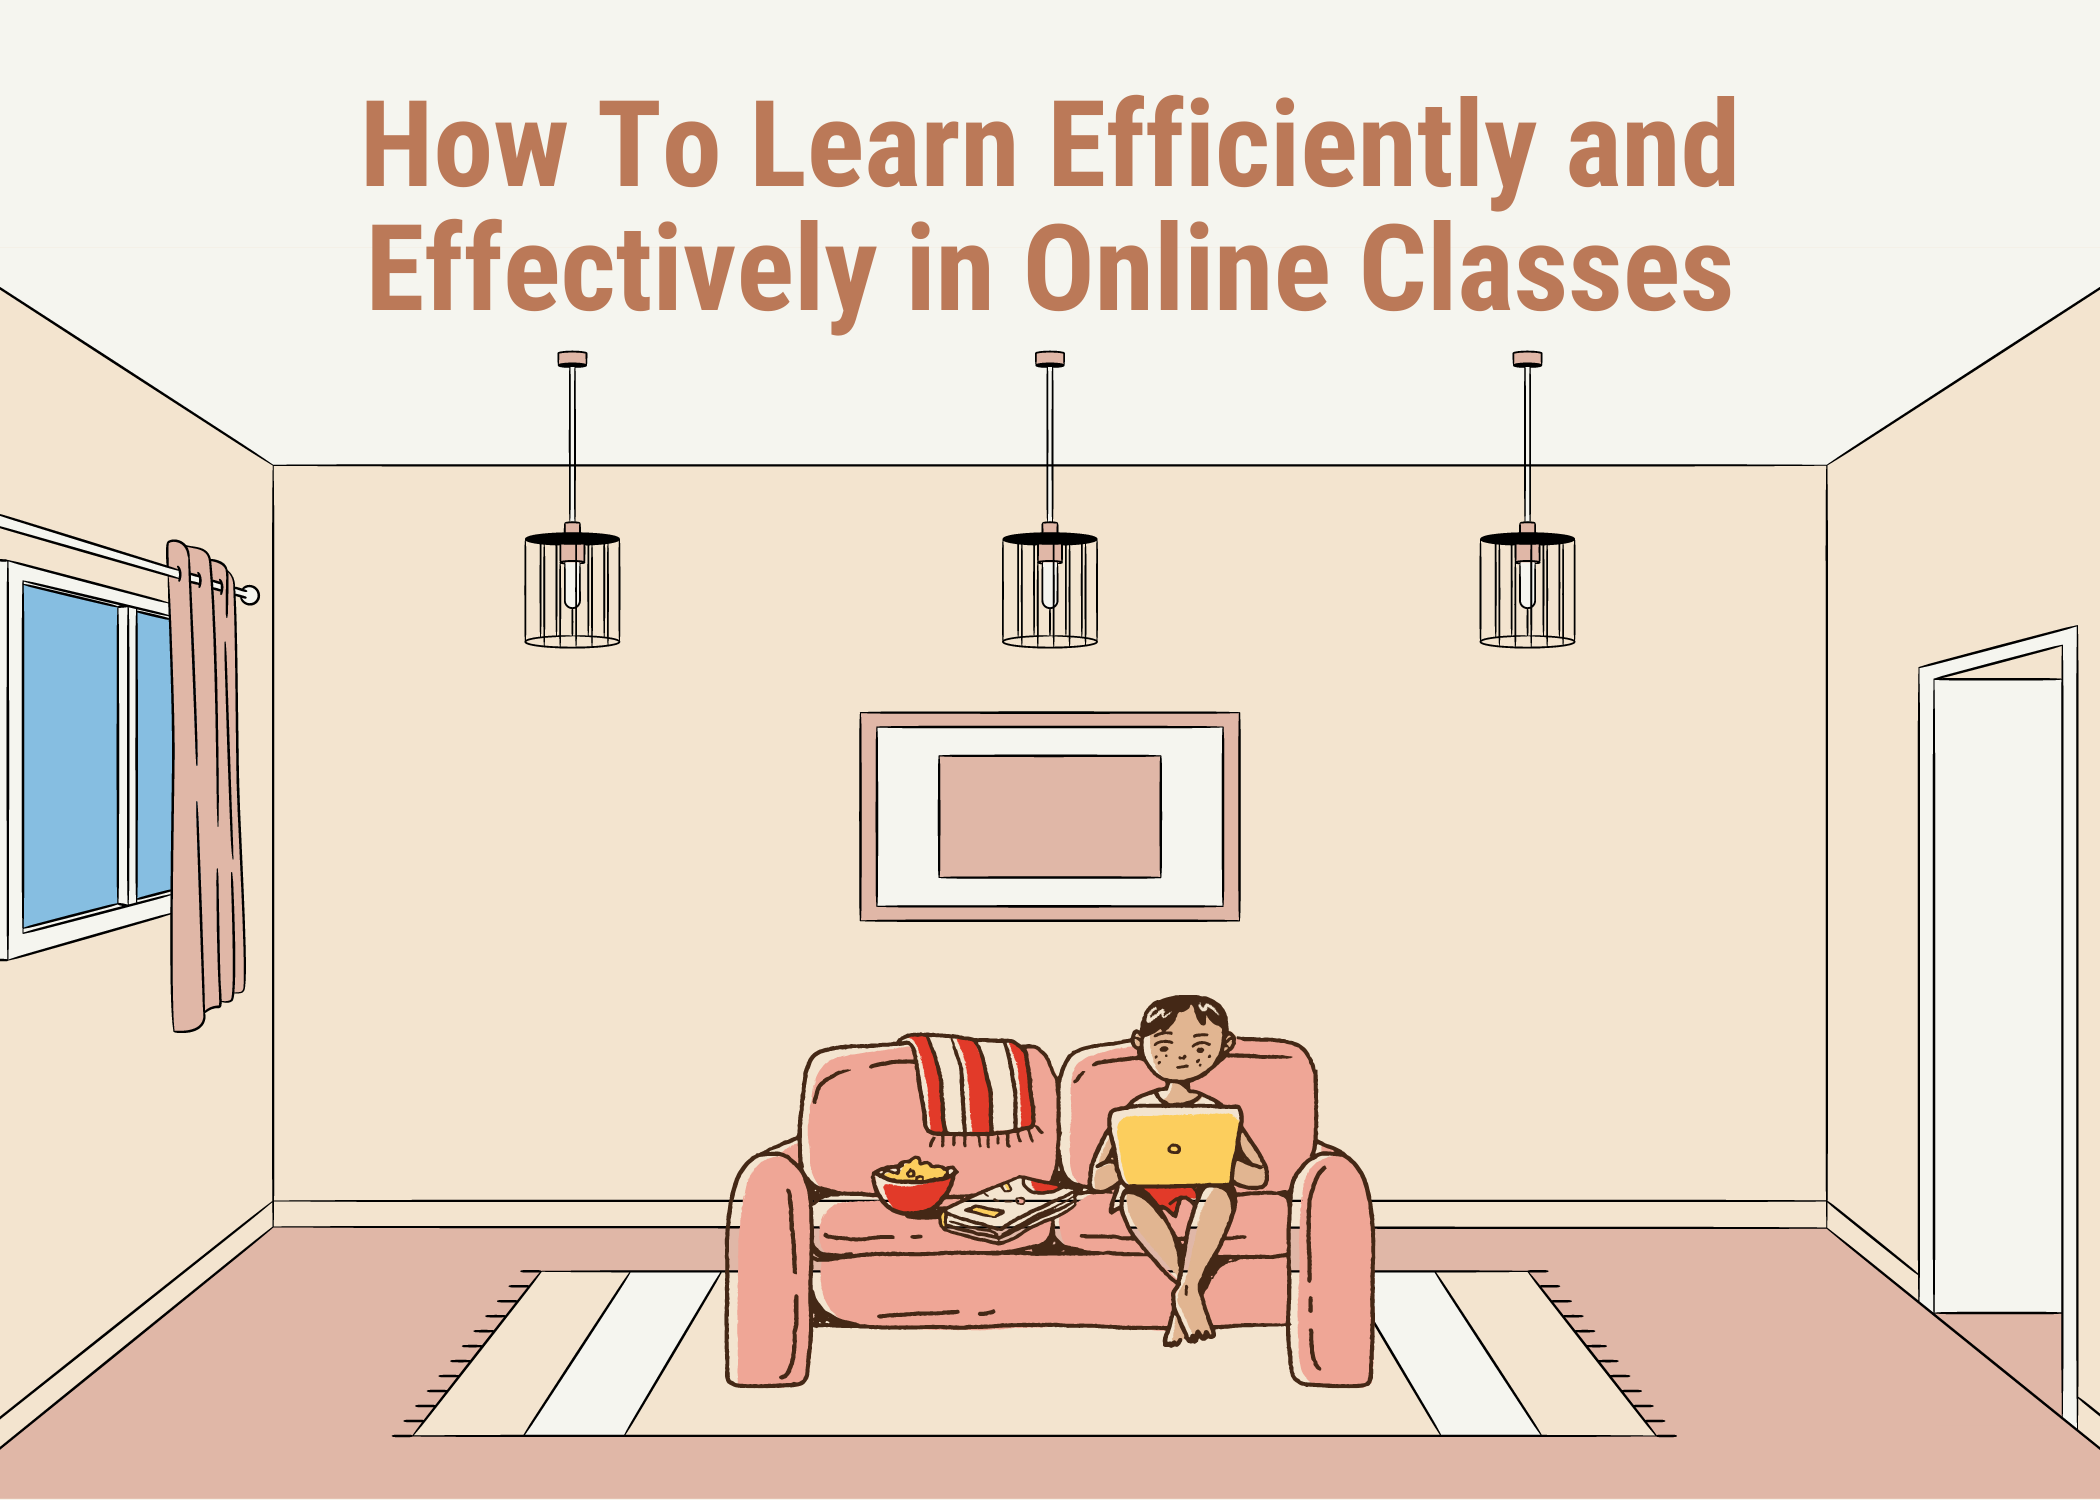 How to Learn Efficiently and Effectively in Online Classes